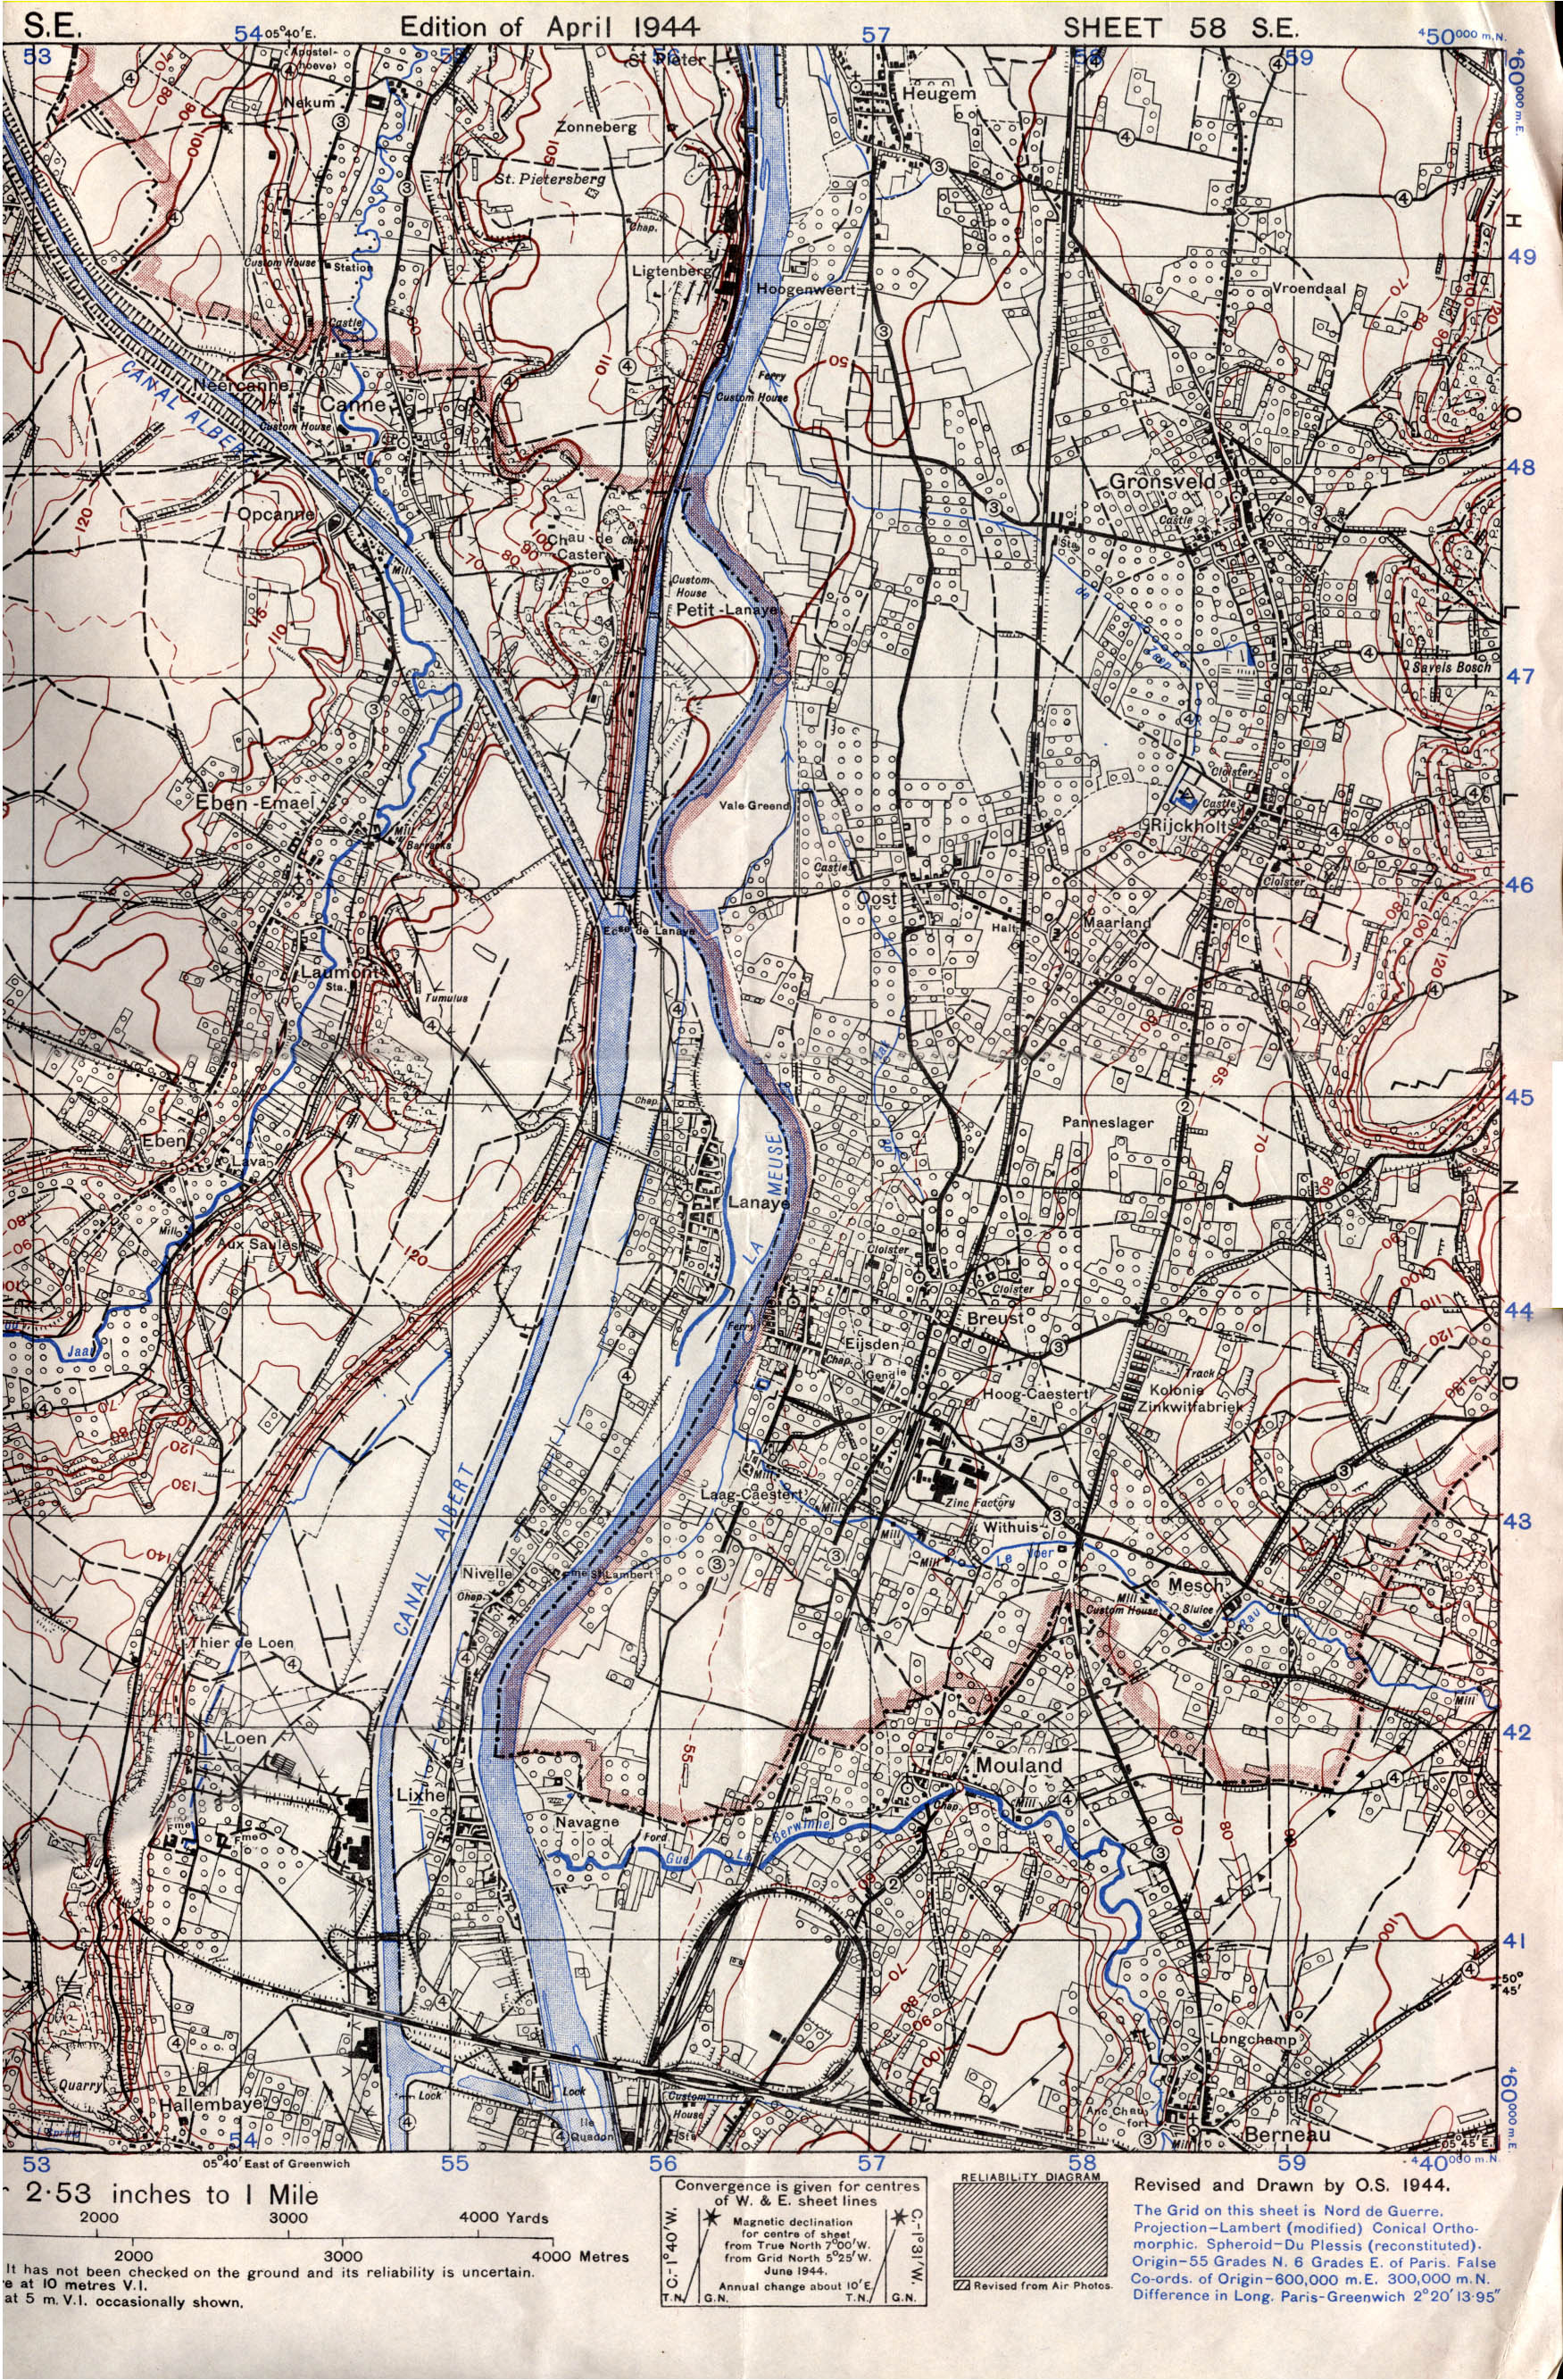 north east north east smaller view red line is general front line on sept 15th 1944